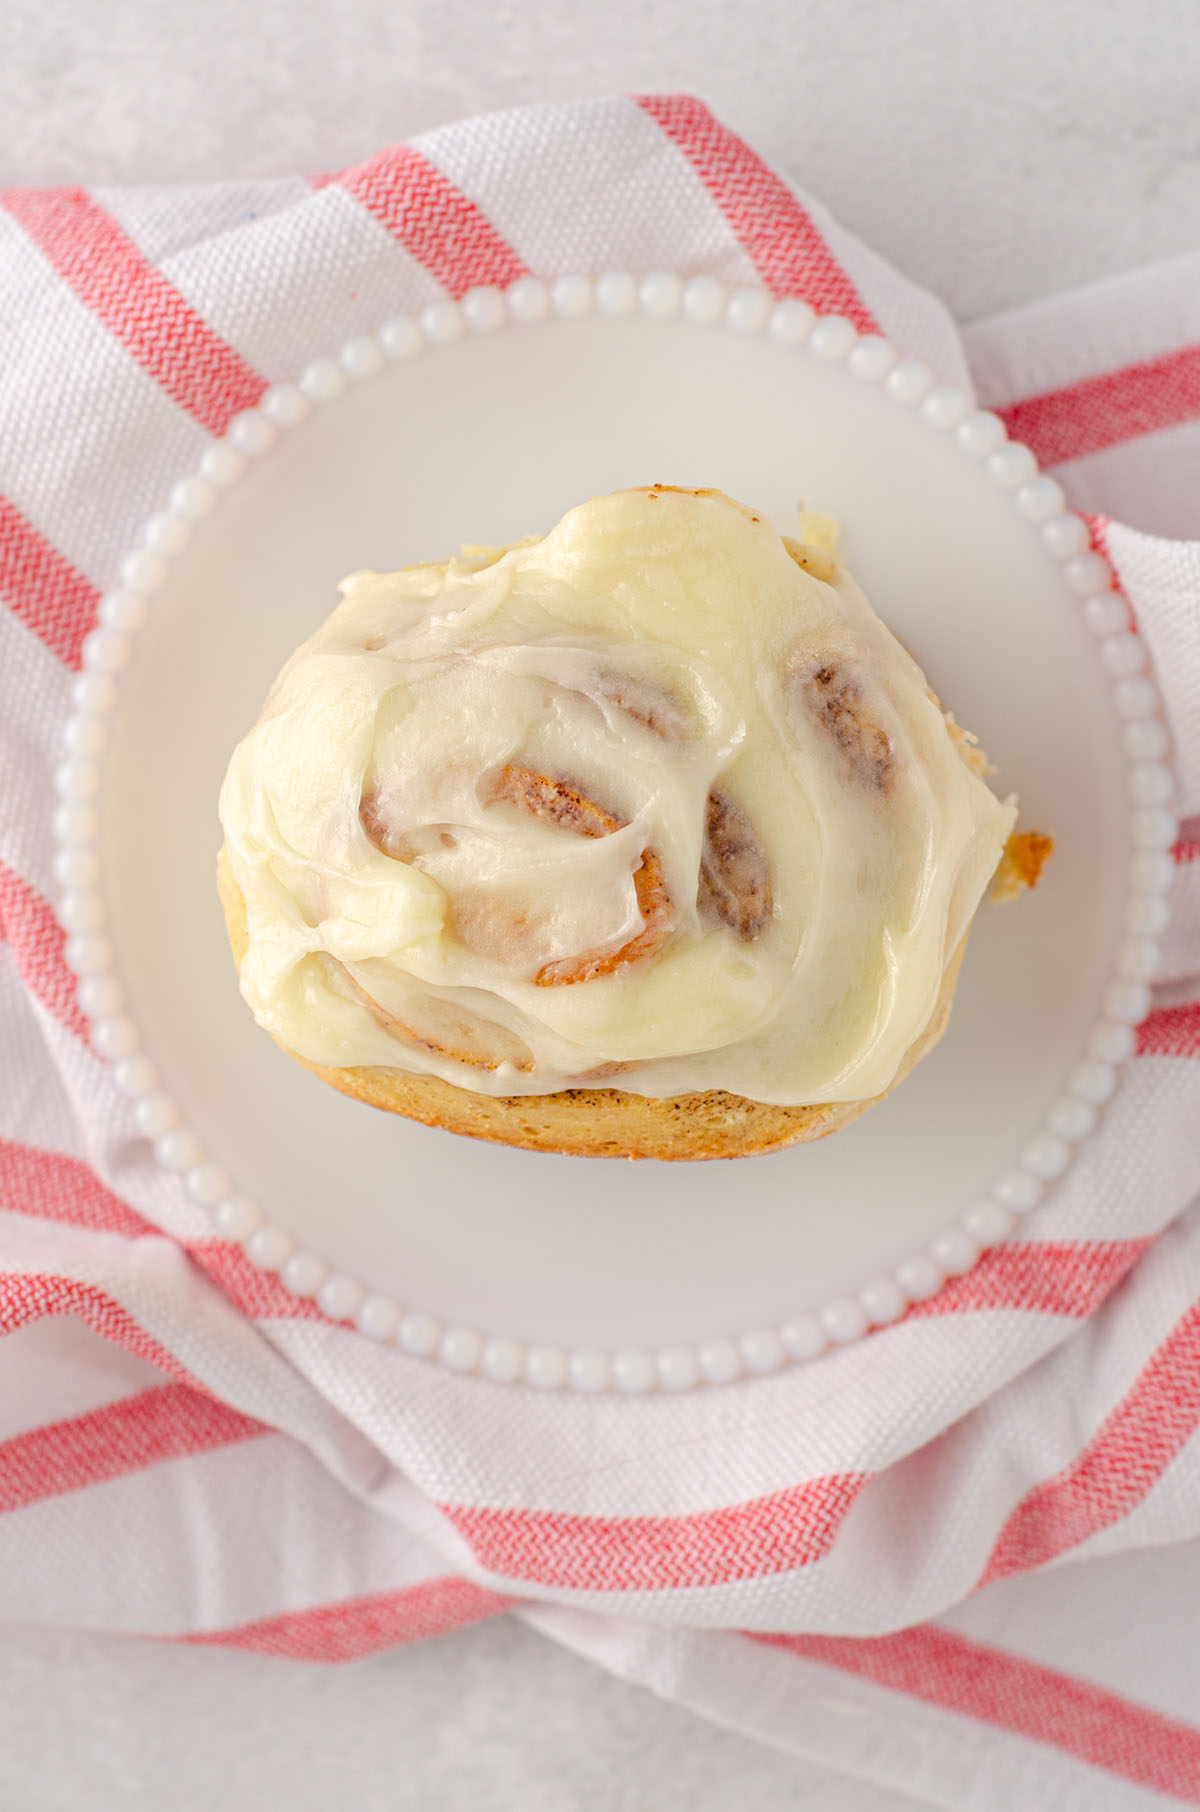 aerial photo of sourdough cinnamon roll with cream cheese icing sitting on a white plate with a red and white striped kitchen towel